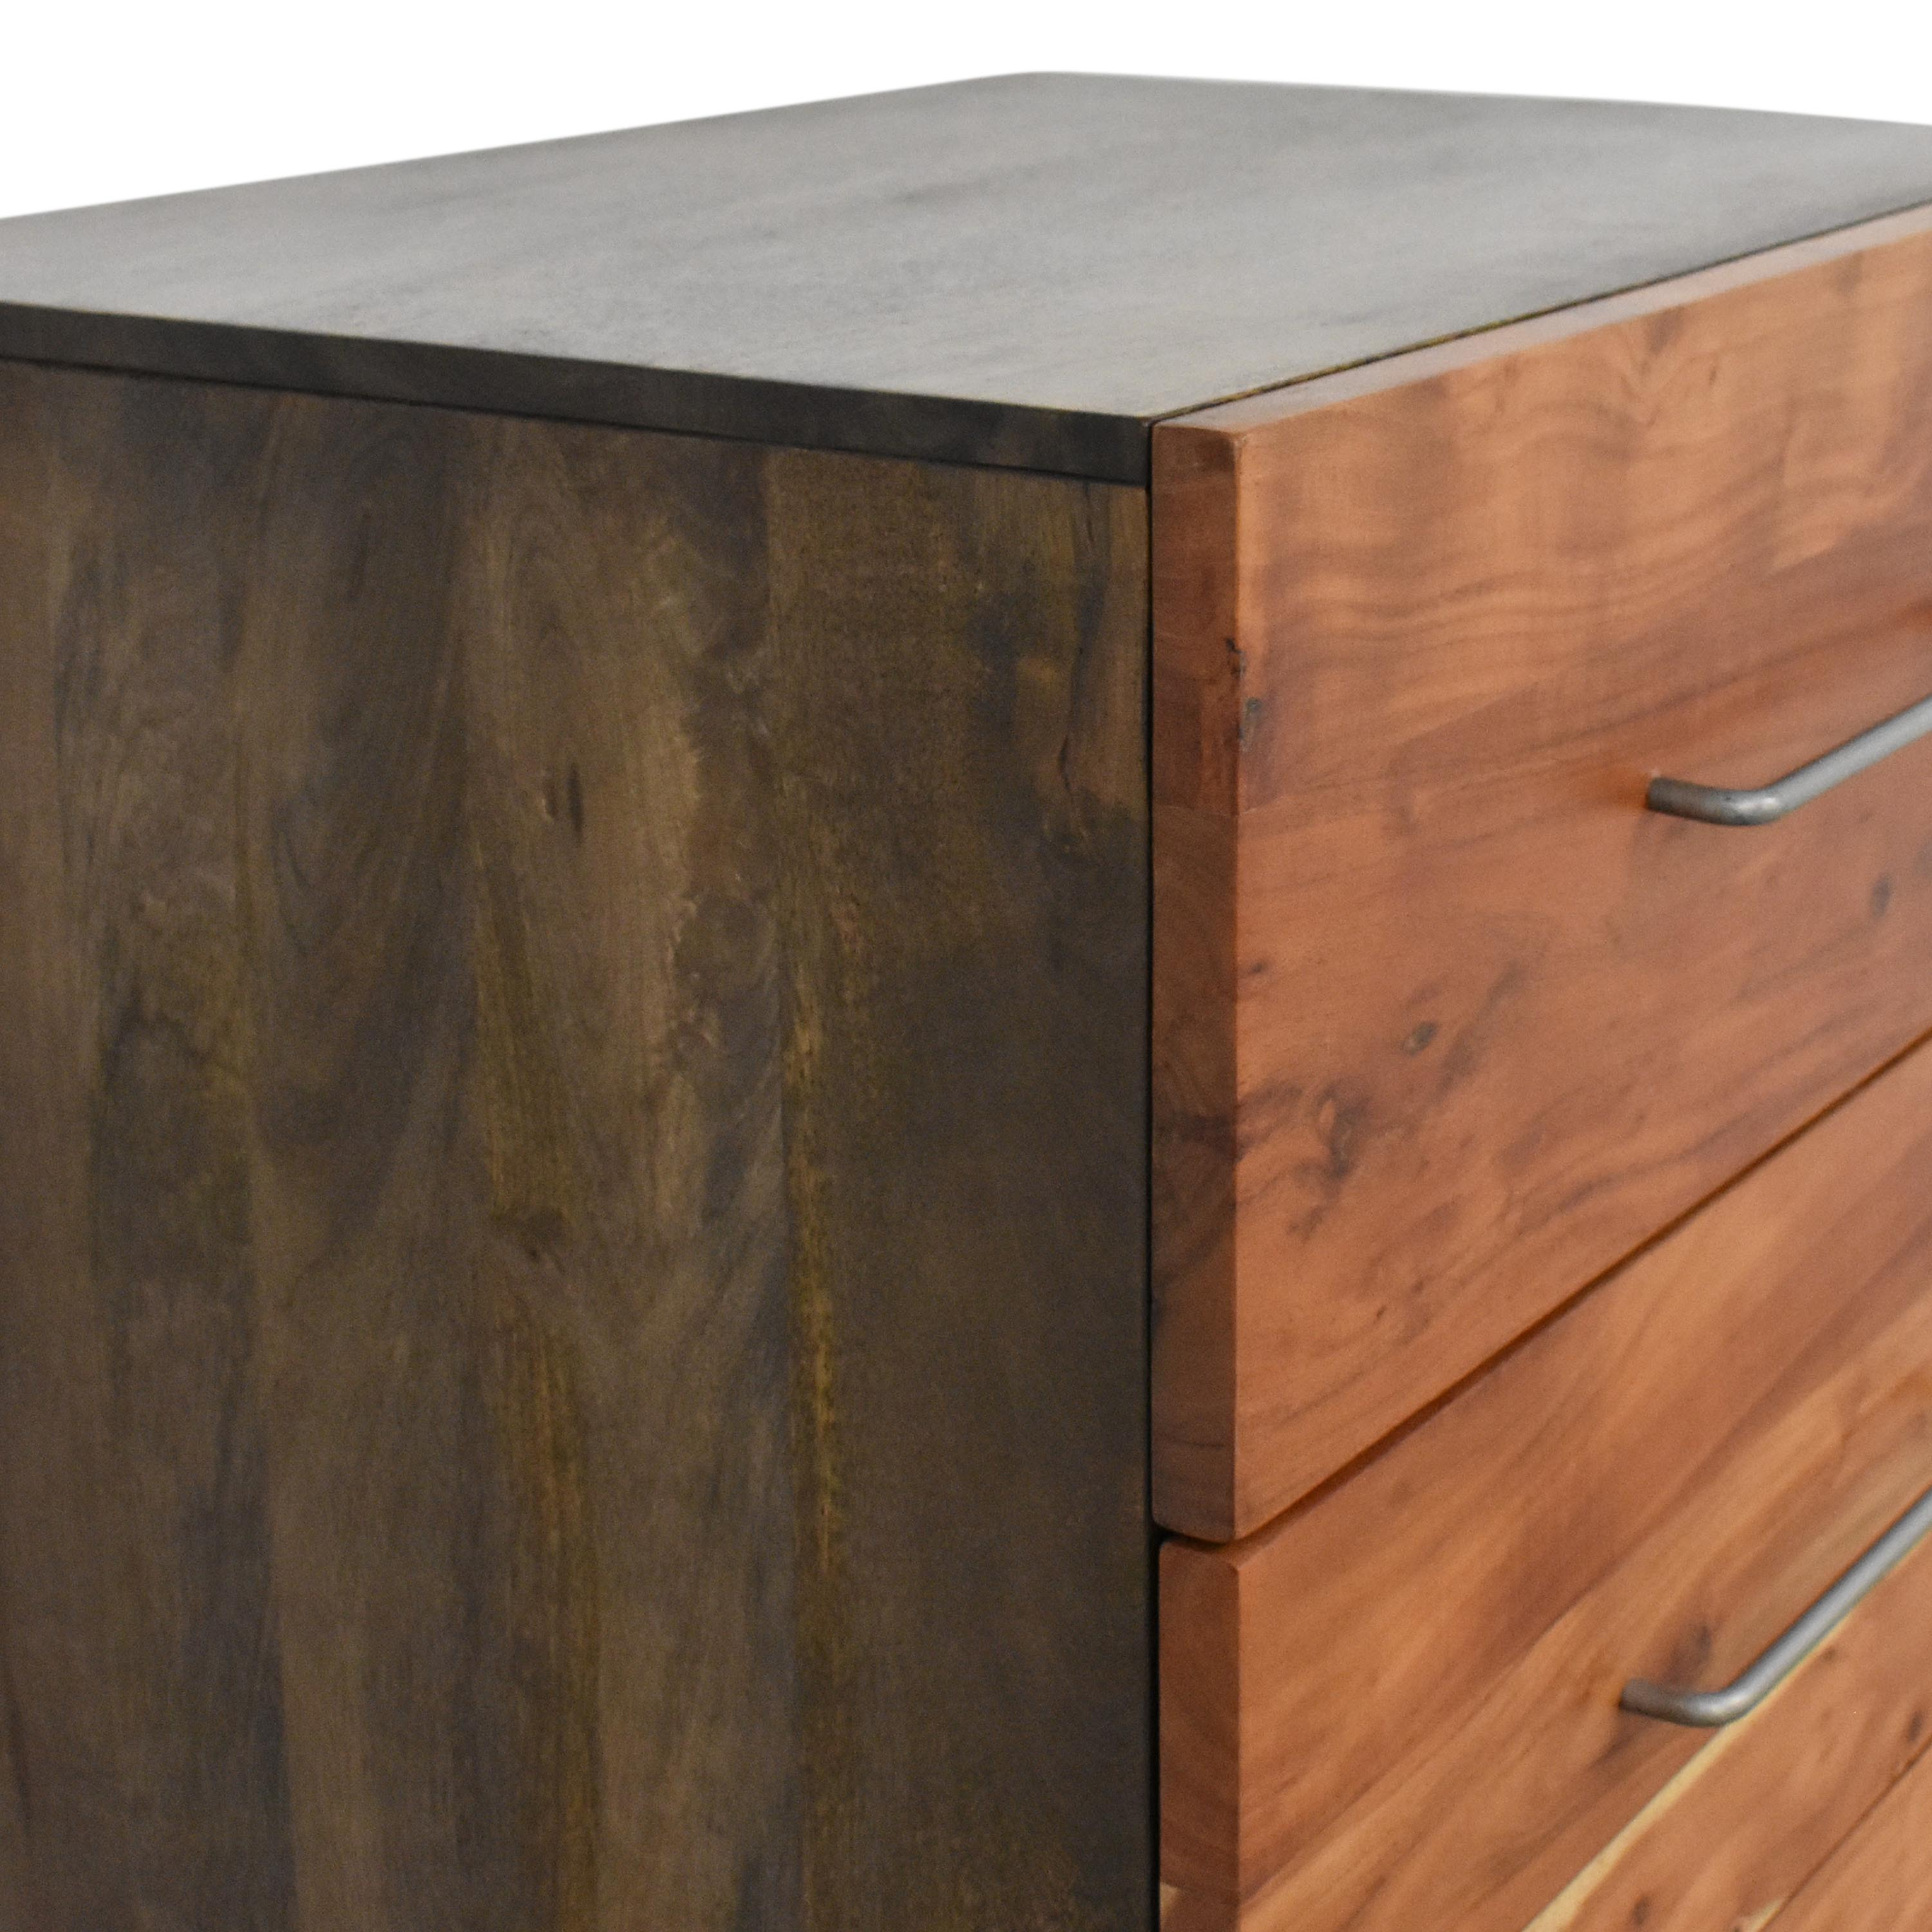 CB2 Link Tall Chest / Storage